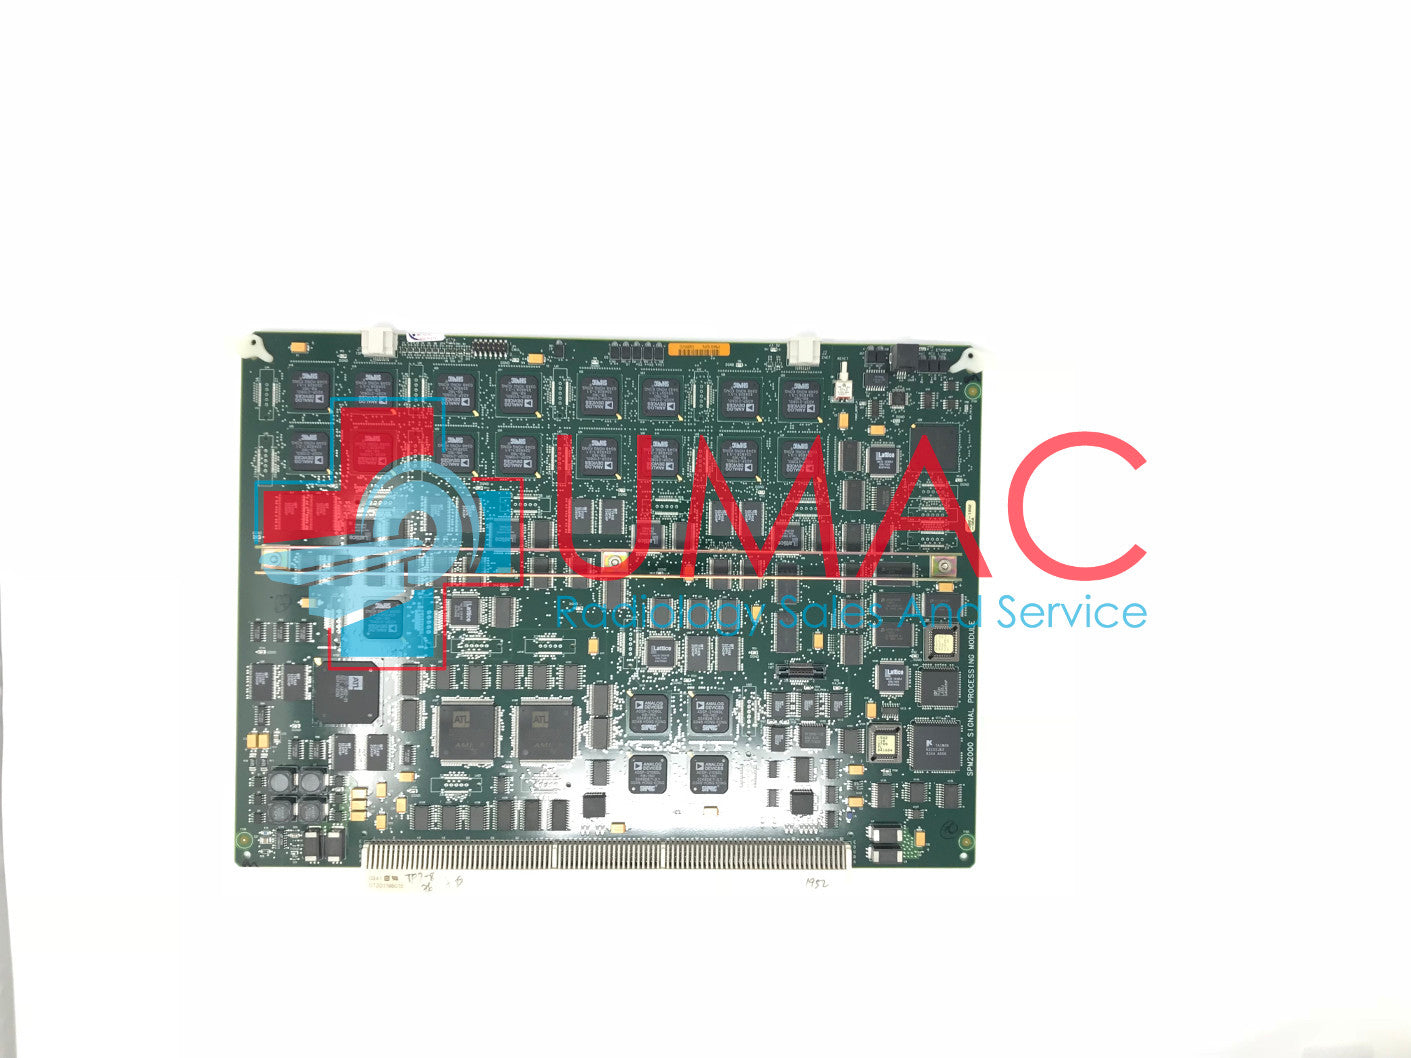 Philips ATL HDI 5000 Ultrasound 7500-1952-06A Signal Processing Module